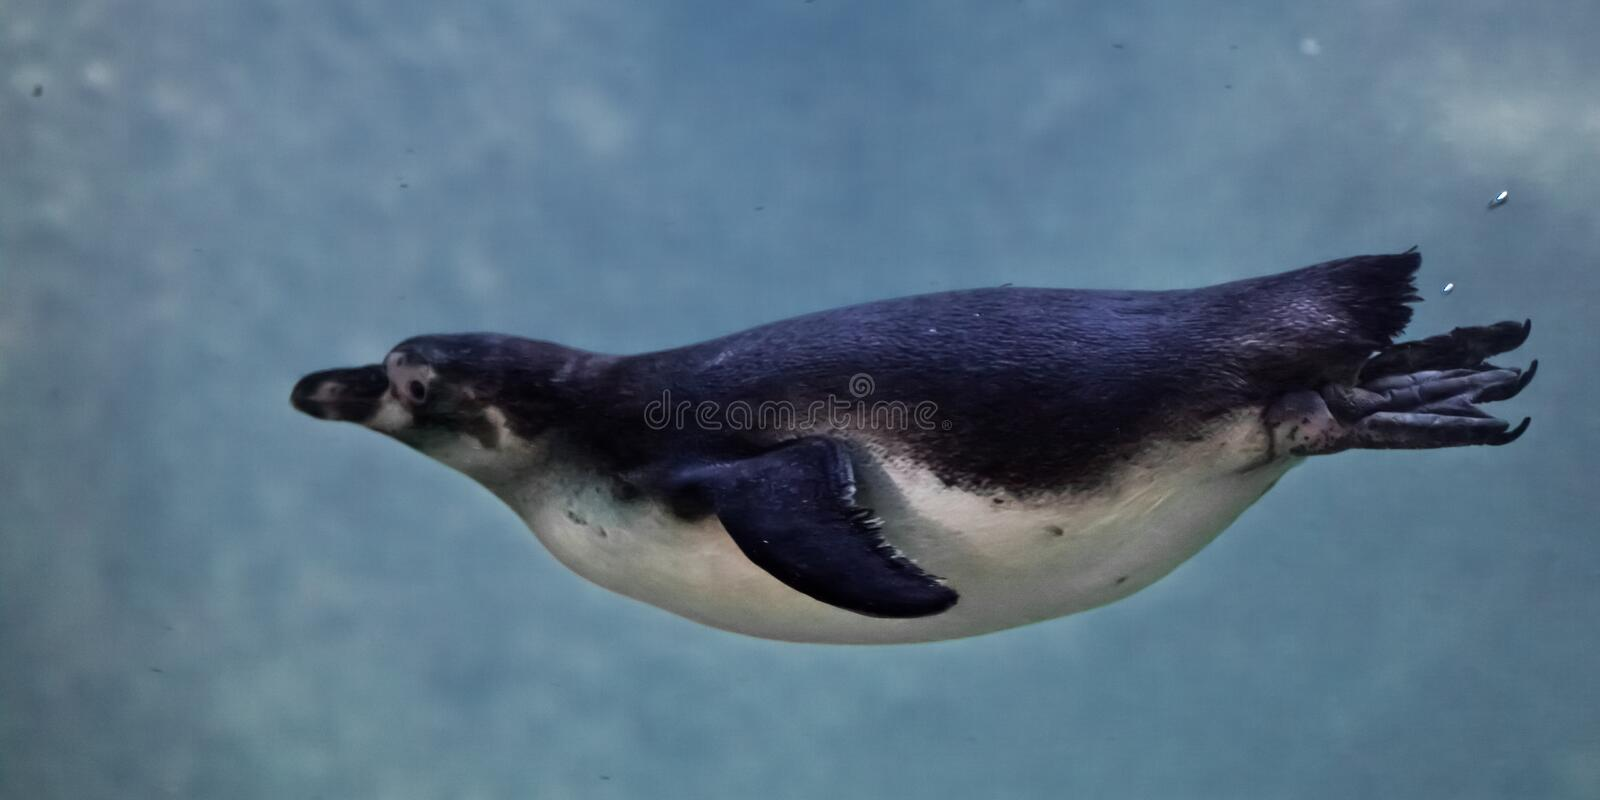 Slender penguin purposefully swims in blue water in the water column, as if flying stock photo